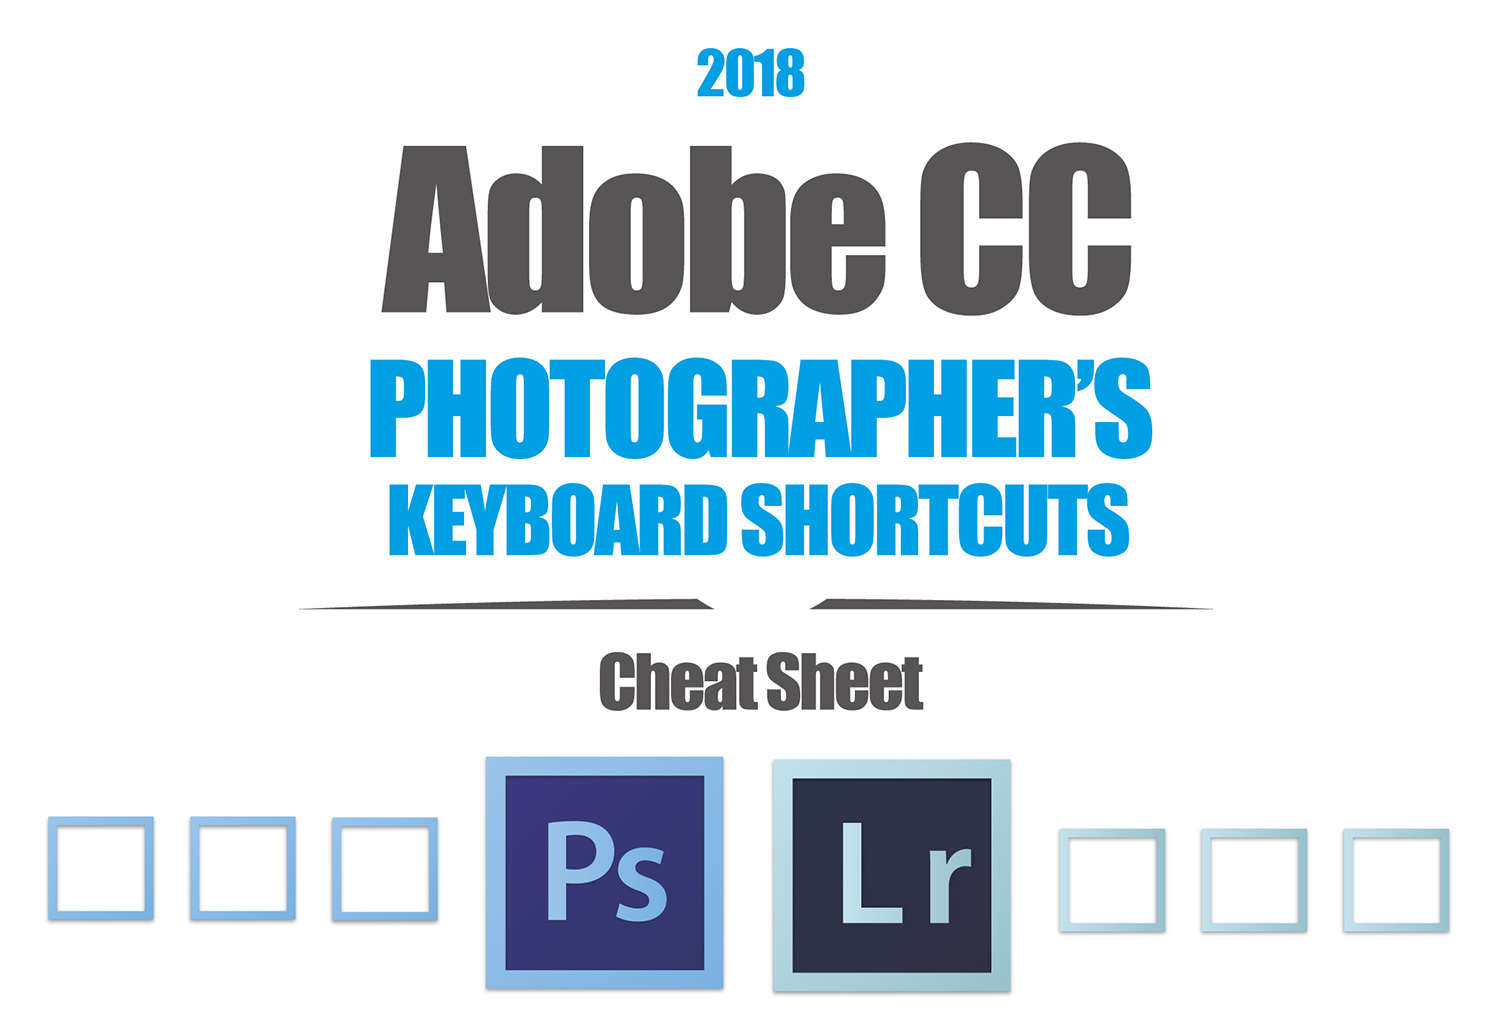 Adobe CC Photographers Keyboard Shortcuts